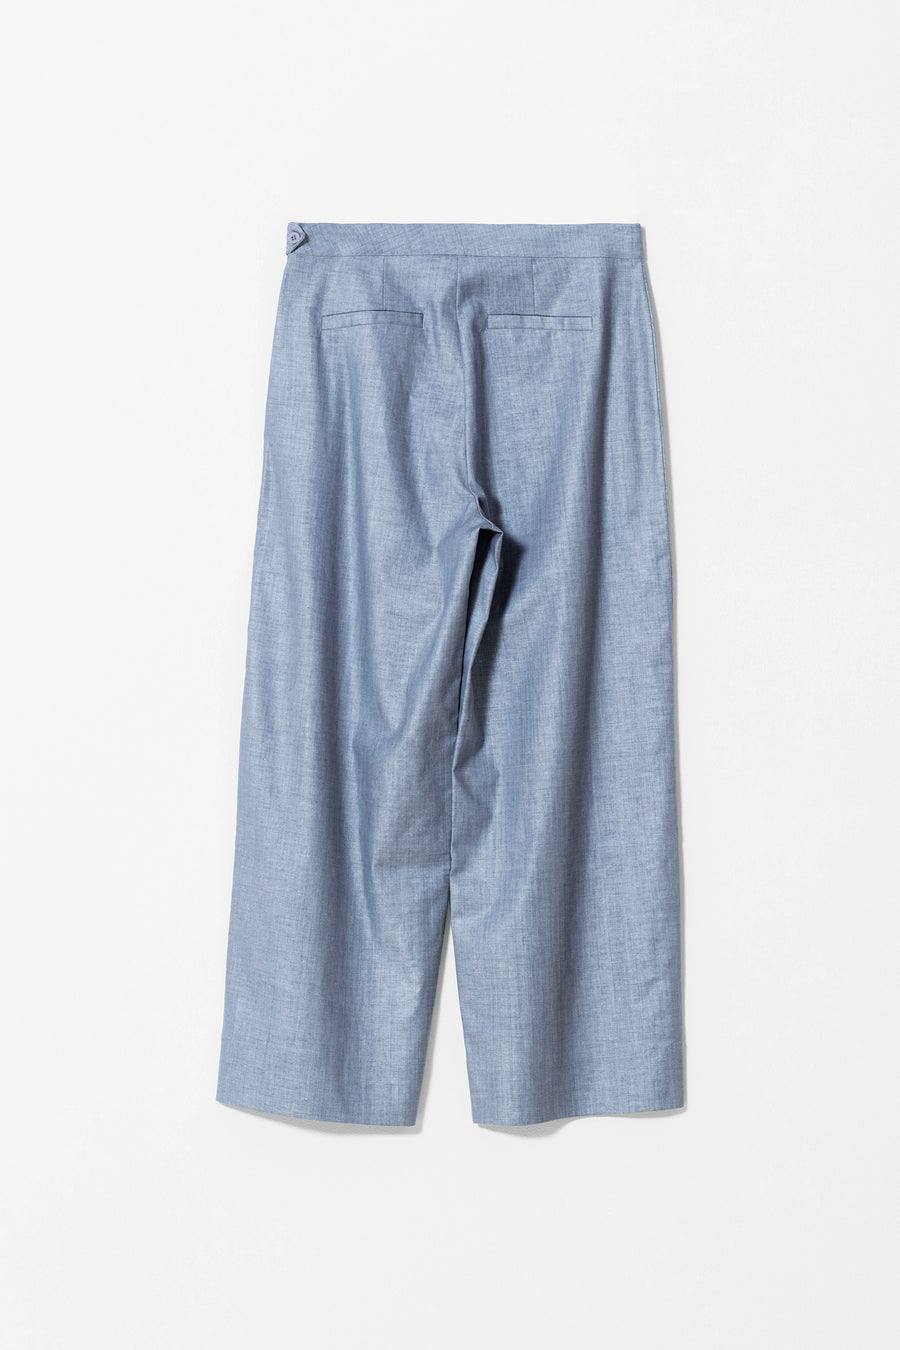 Elk Hersom Pants - Charcoal - Shop Online At Mookah - mookah.com.au